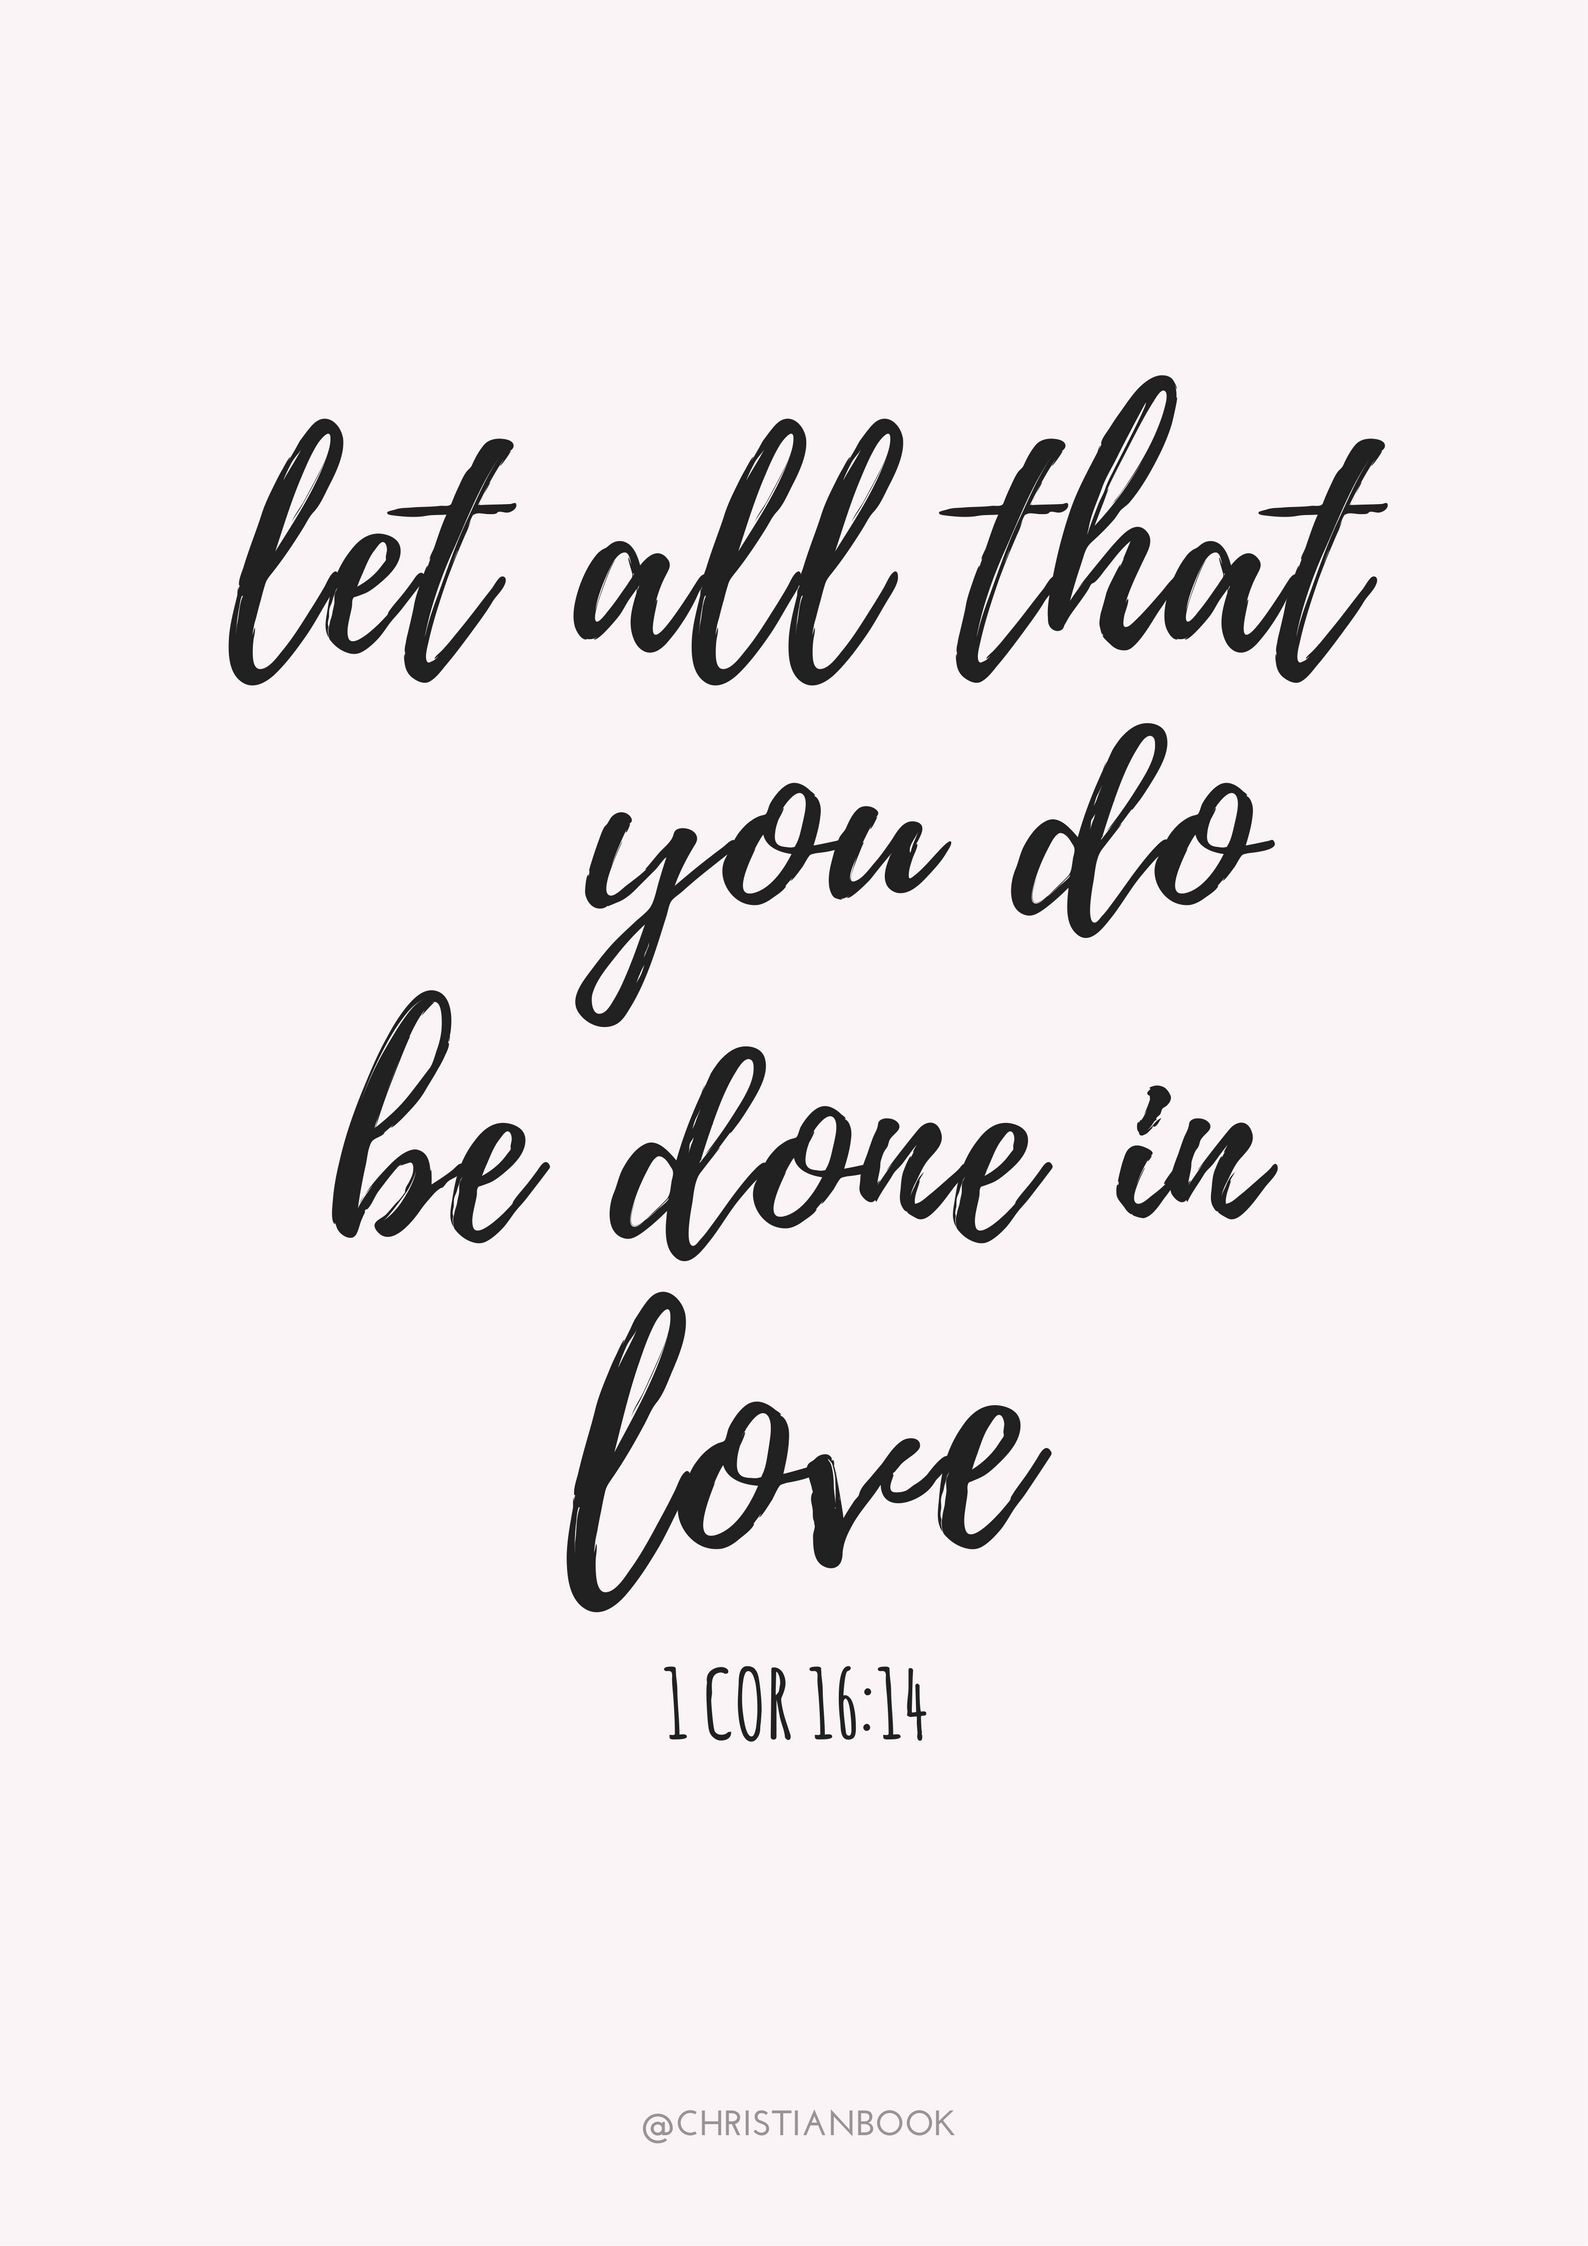 Ordinaire Let All That You Do Be Done In Love   1 Corinthians 16:14